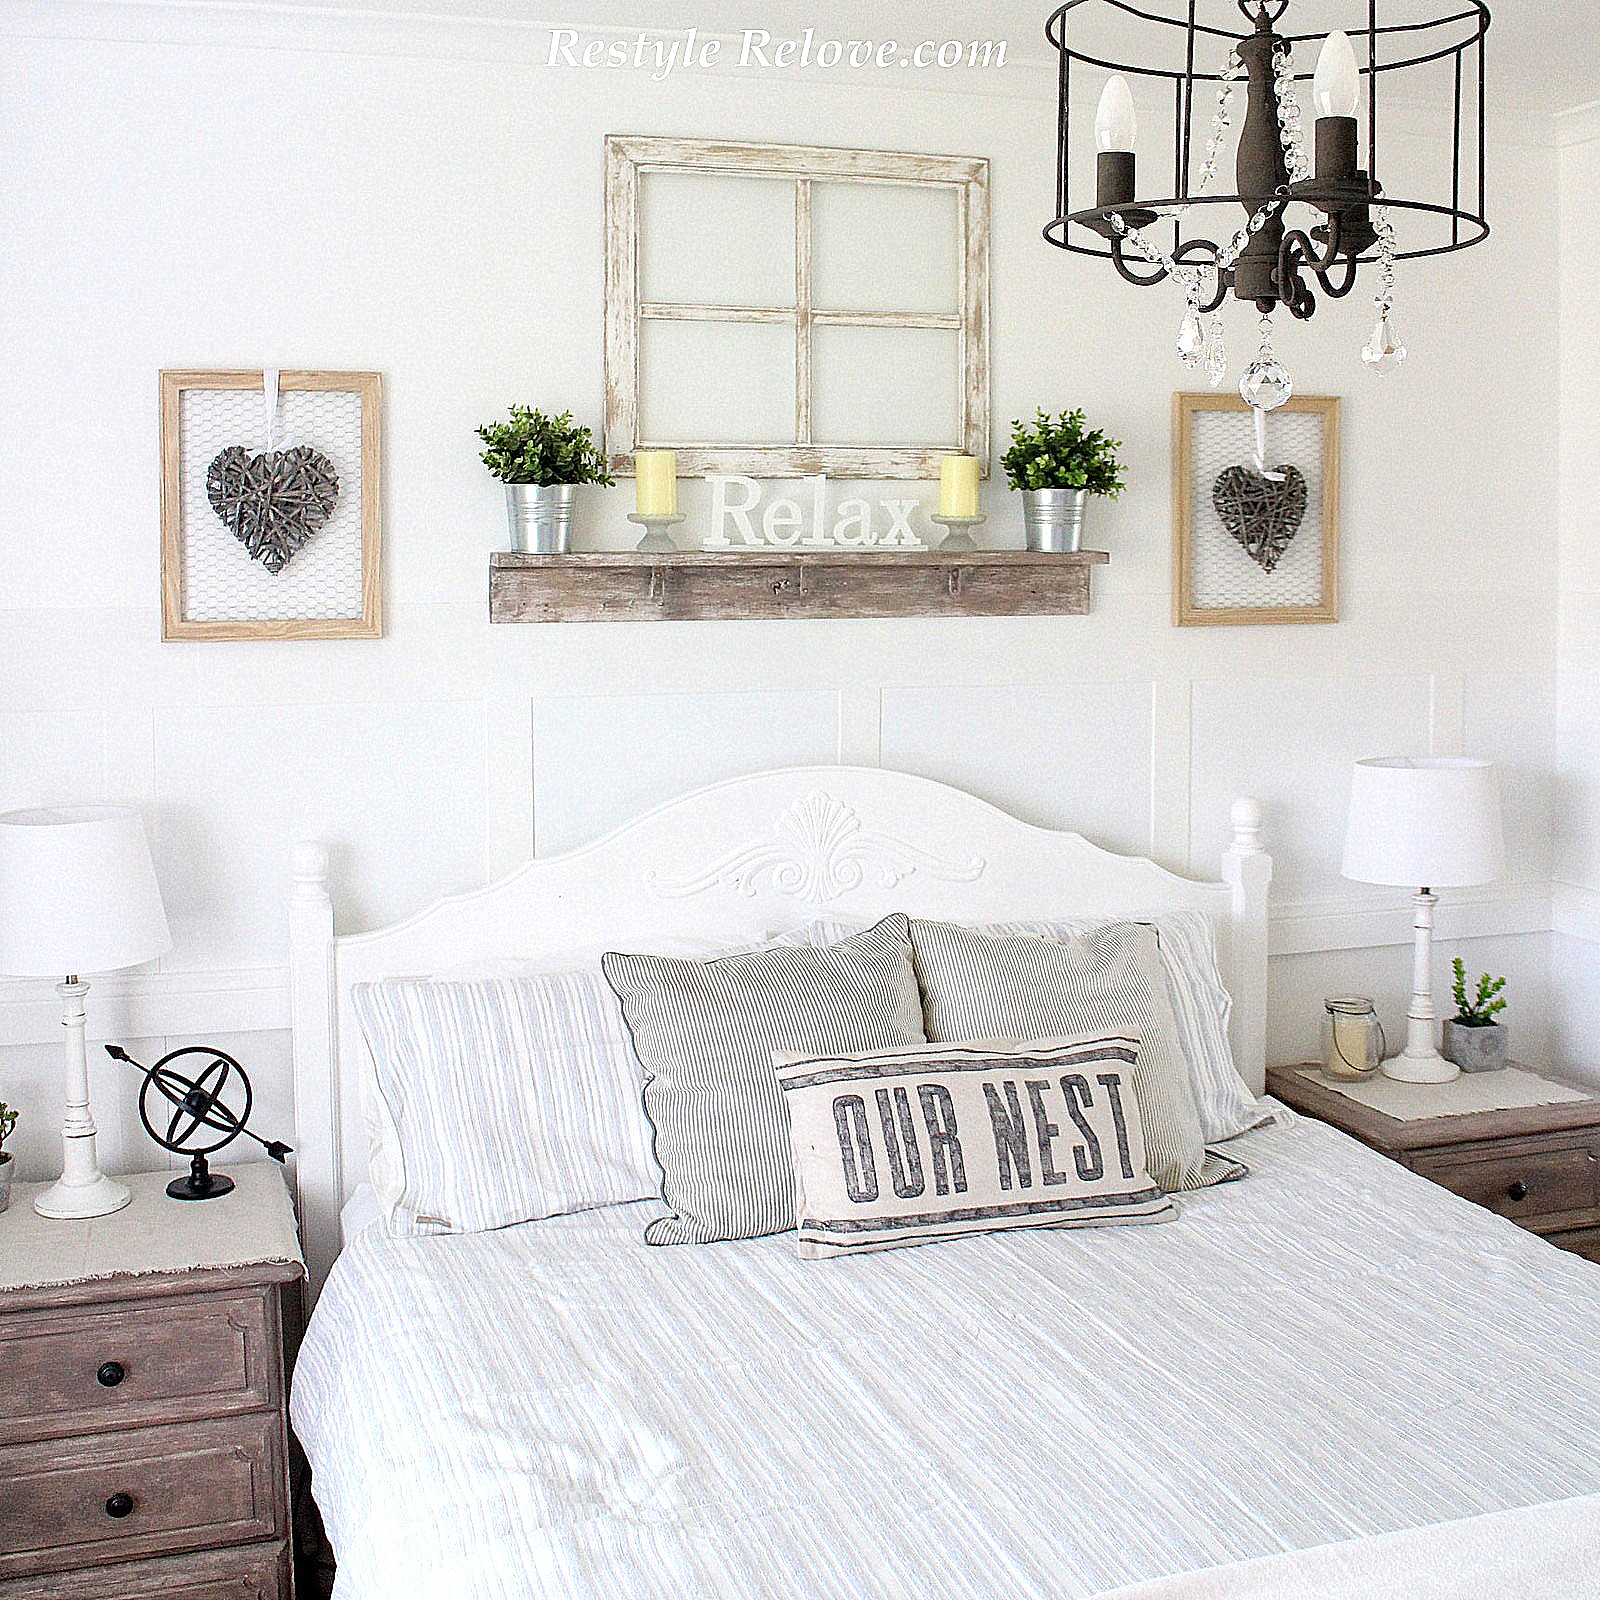 Farmhouse Bedroom: New Rustic Farmhouse Bedside Lamps In The Master Bedroom